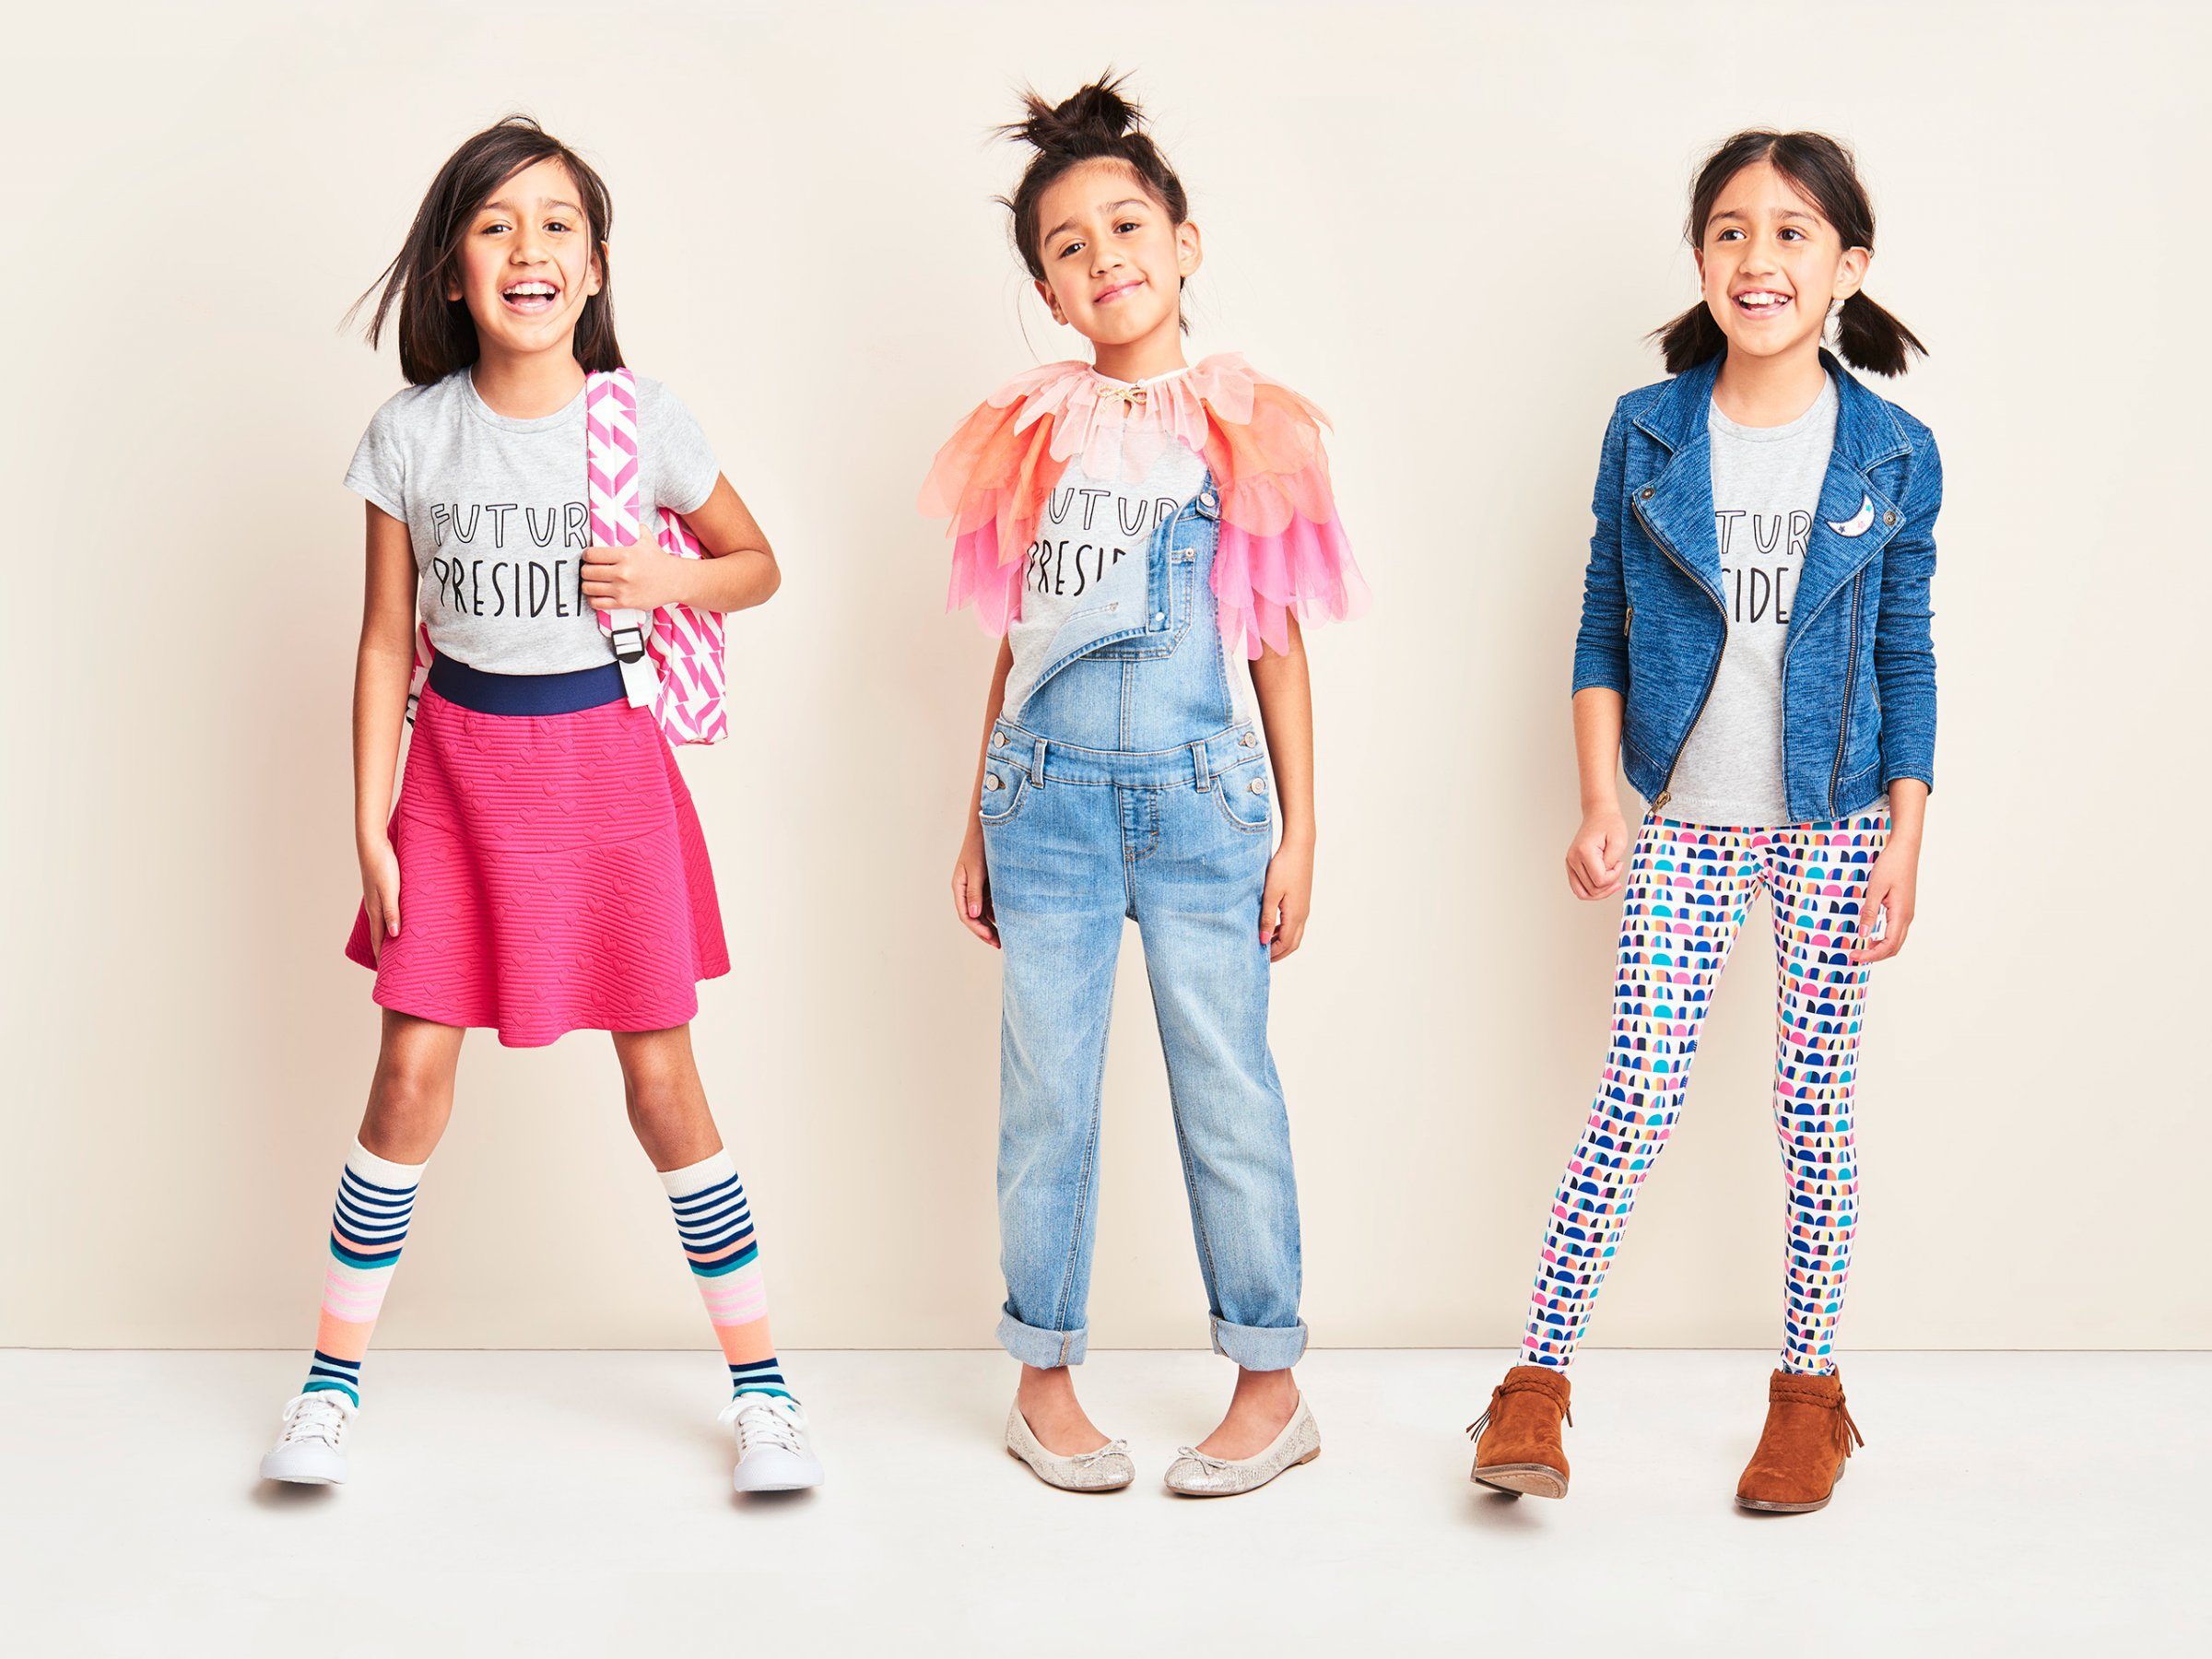 6a930bcc Today in awesome: Target debuts new kids' clothing line with gender-neutral  options - HelloGiggles